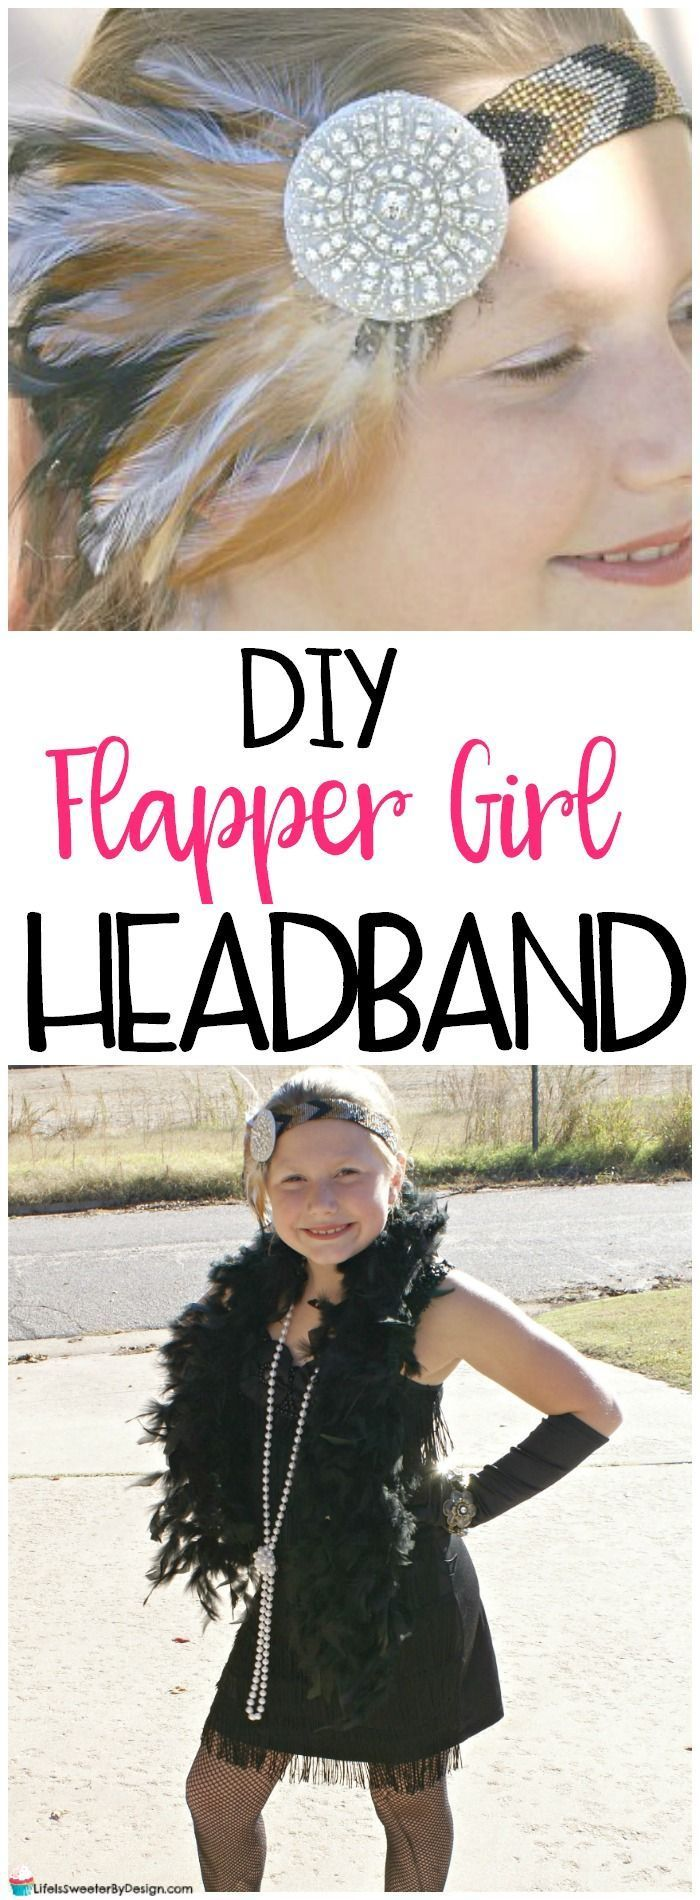 A flapper girl costume is so cute for Halloween. Find out how to make a Flapper Girl Headband at home! A simple DIY that will make your child's Halloween costume stand out and save you money at Halloween!